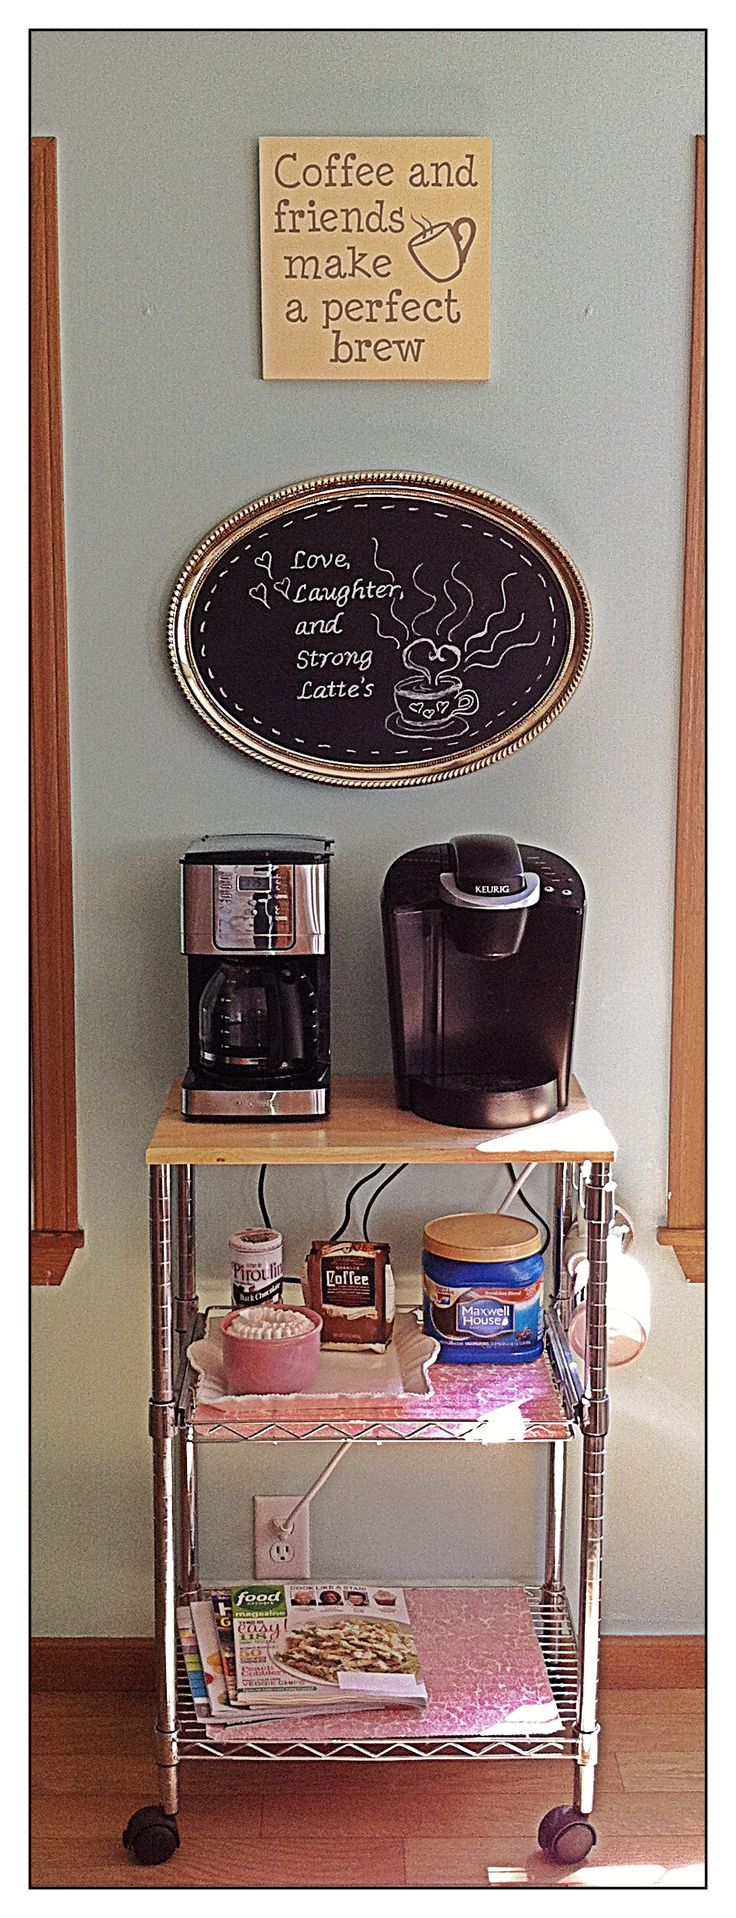 My new coffee station!